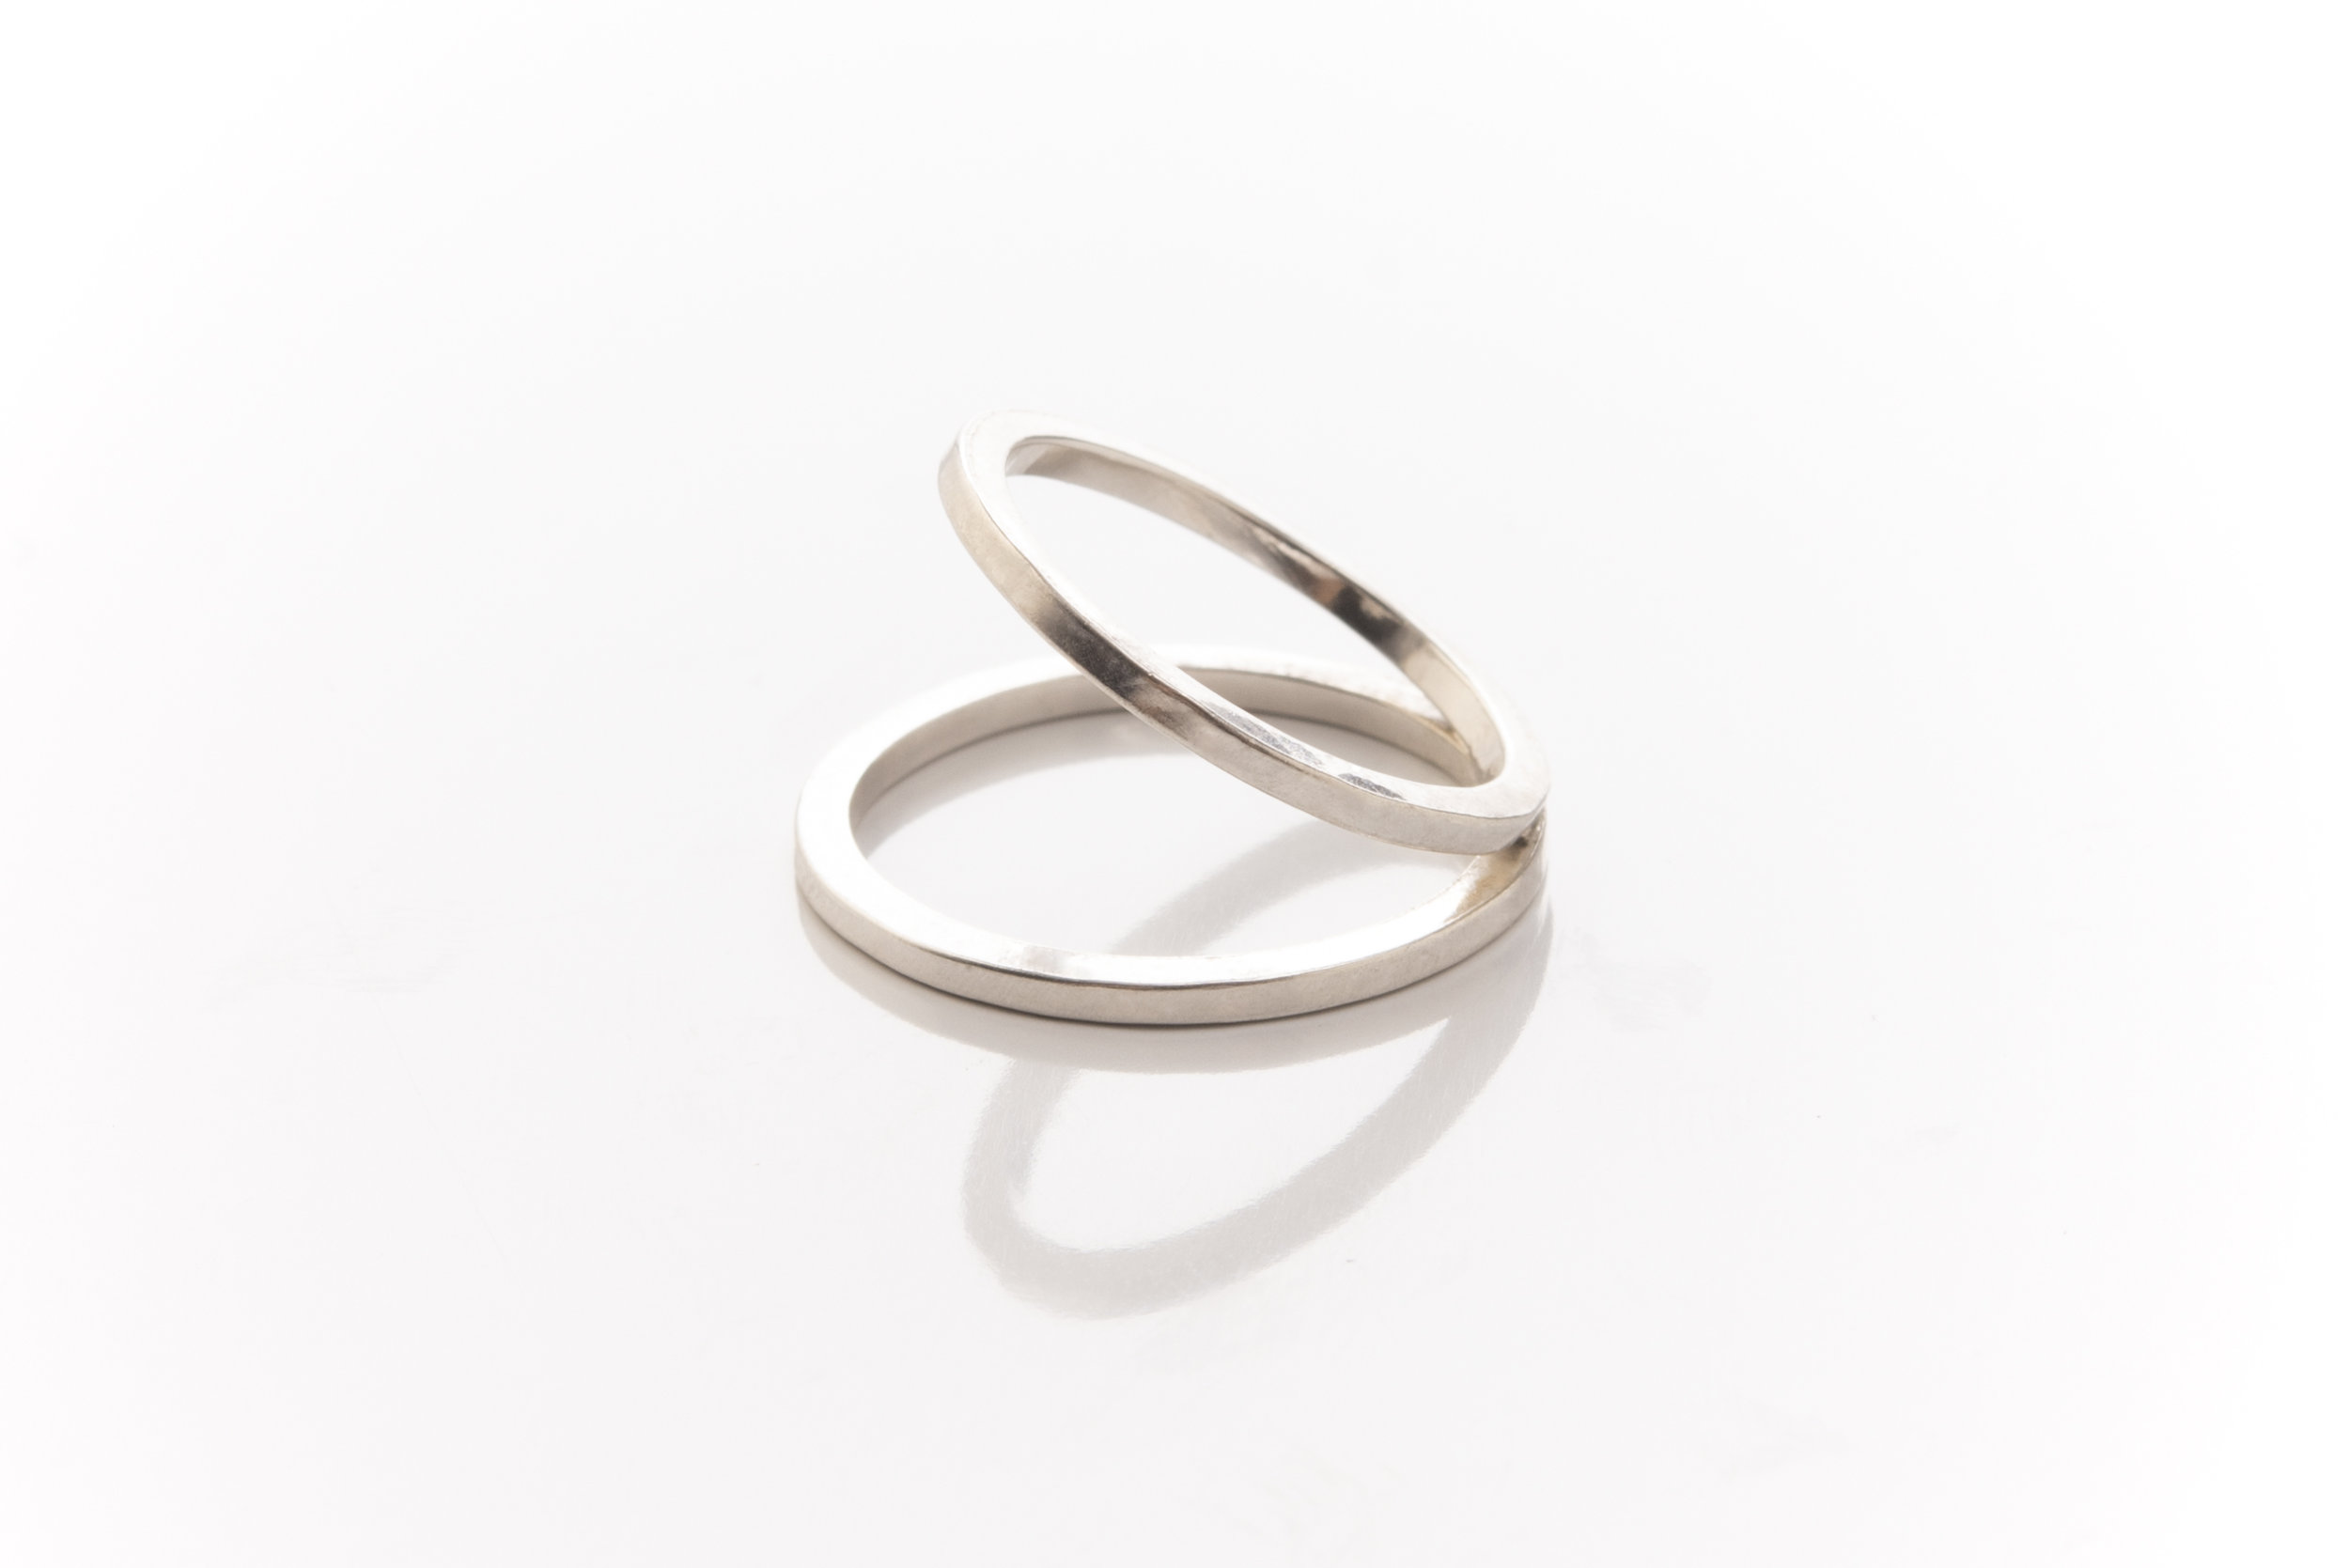 10_Ulterior_double band ring_2.jpg